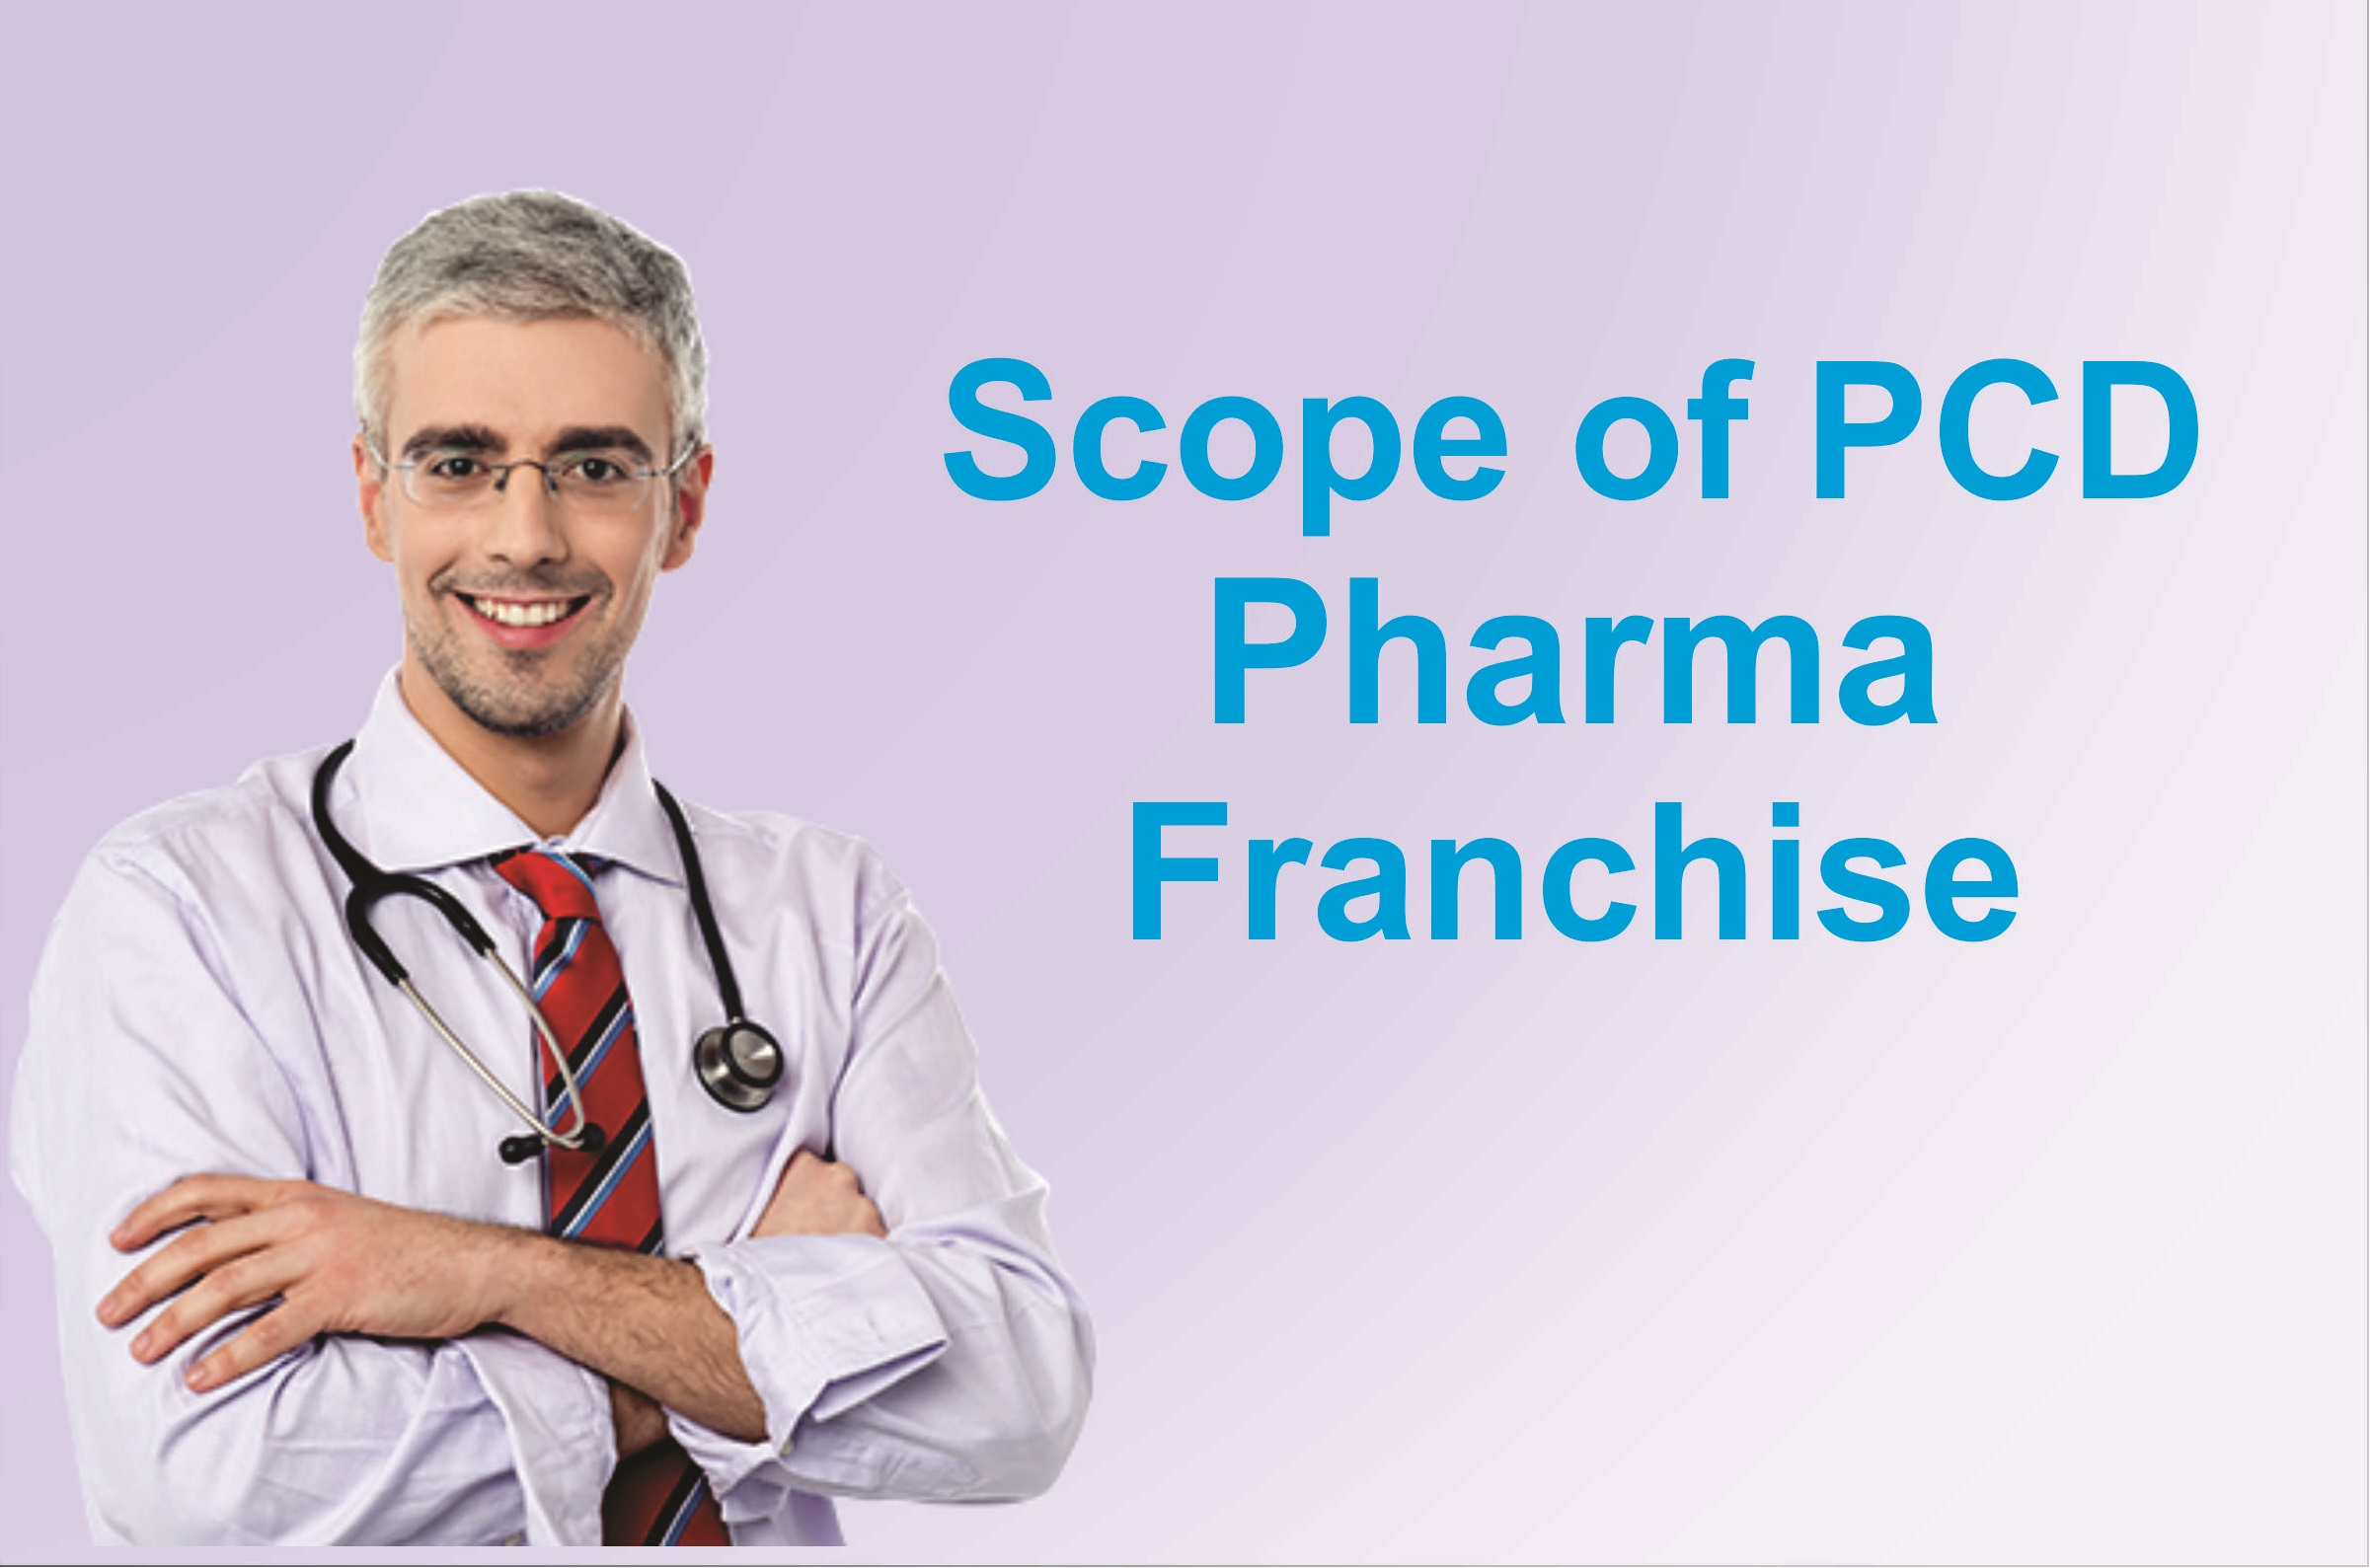 Scope of PCD Pharma Franchise